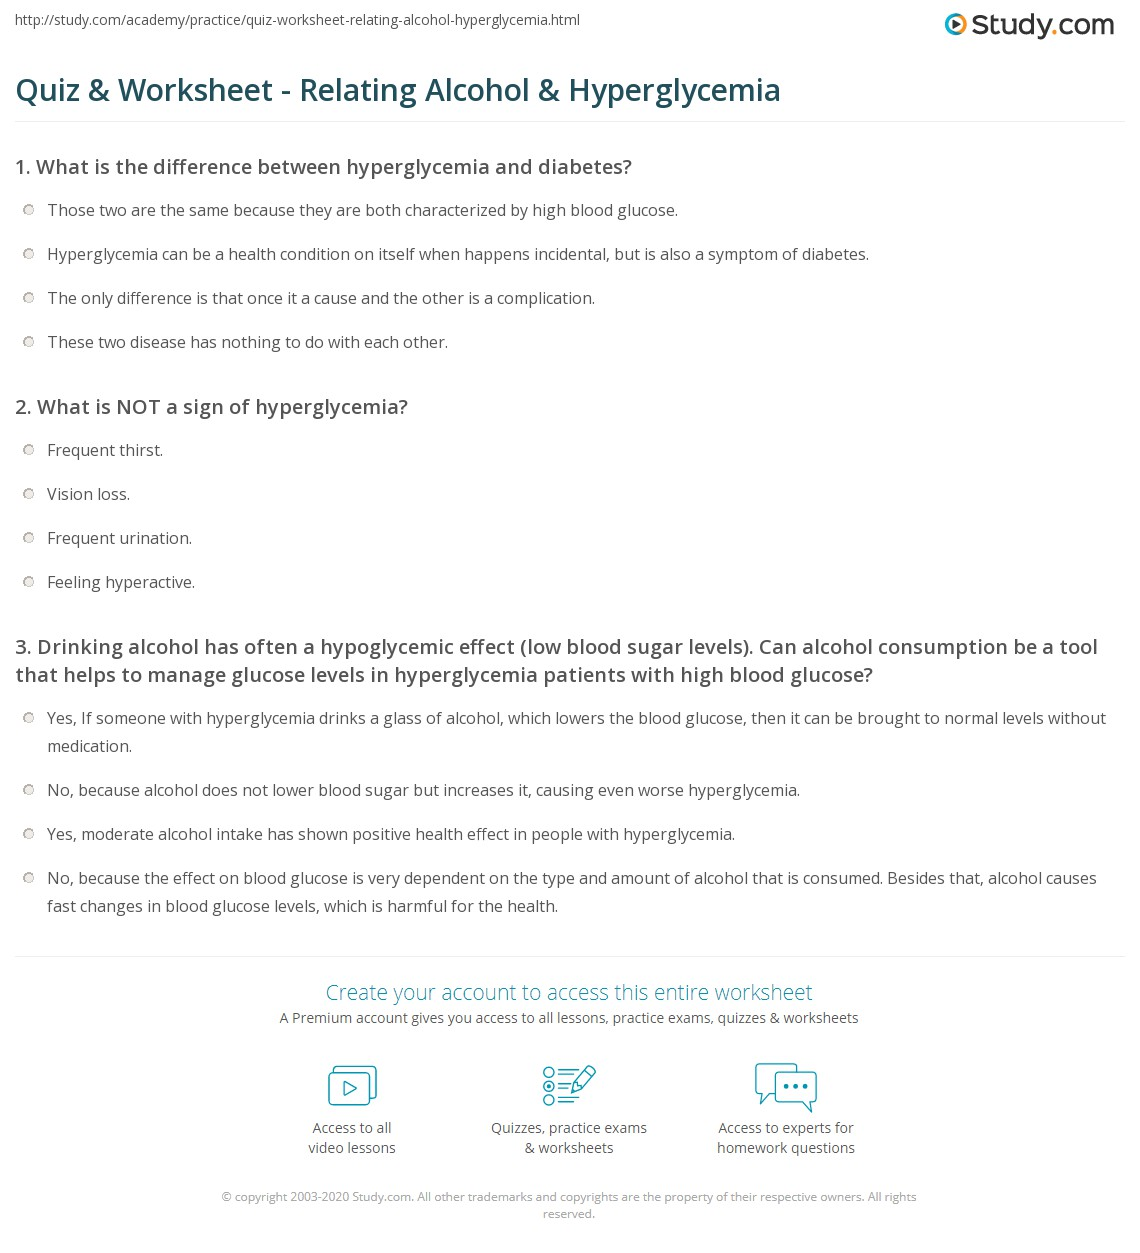 Quiz & Worksheet - Relating Alcohol & Hyperglycemia | Study com